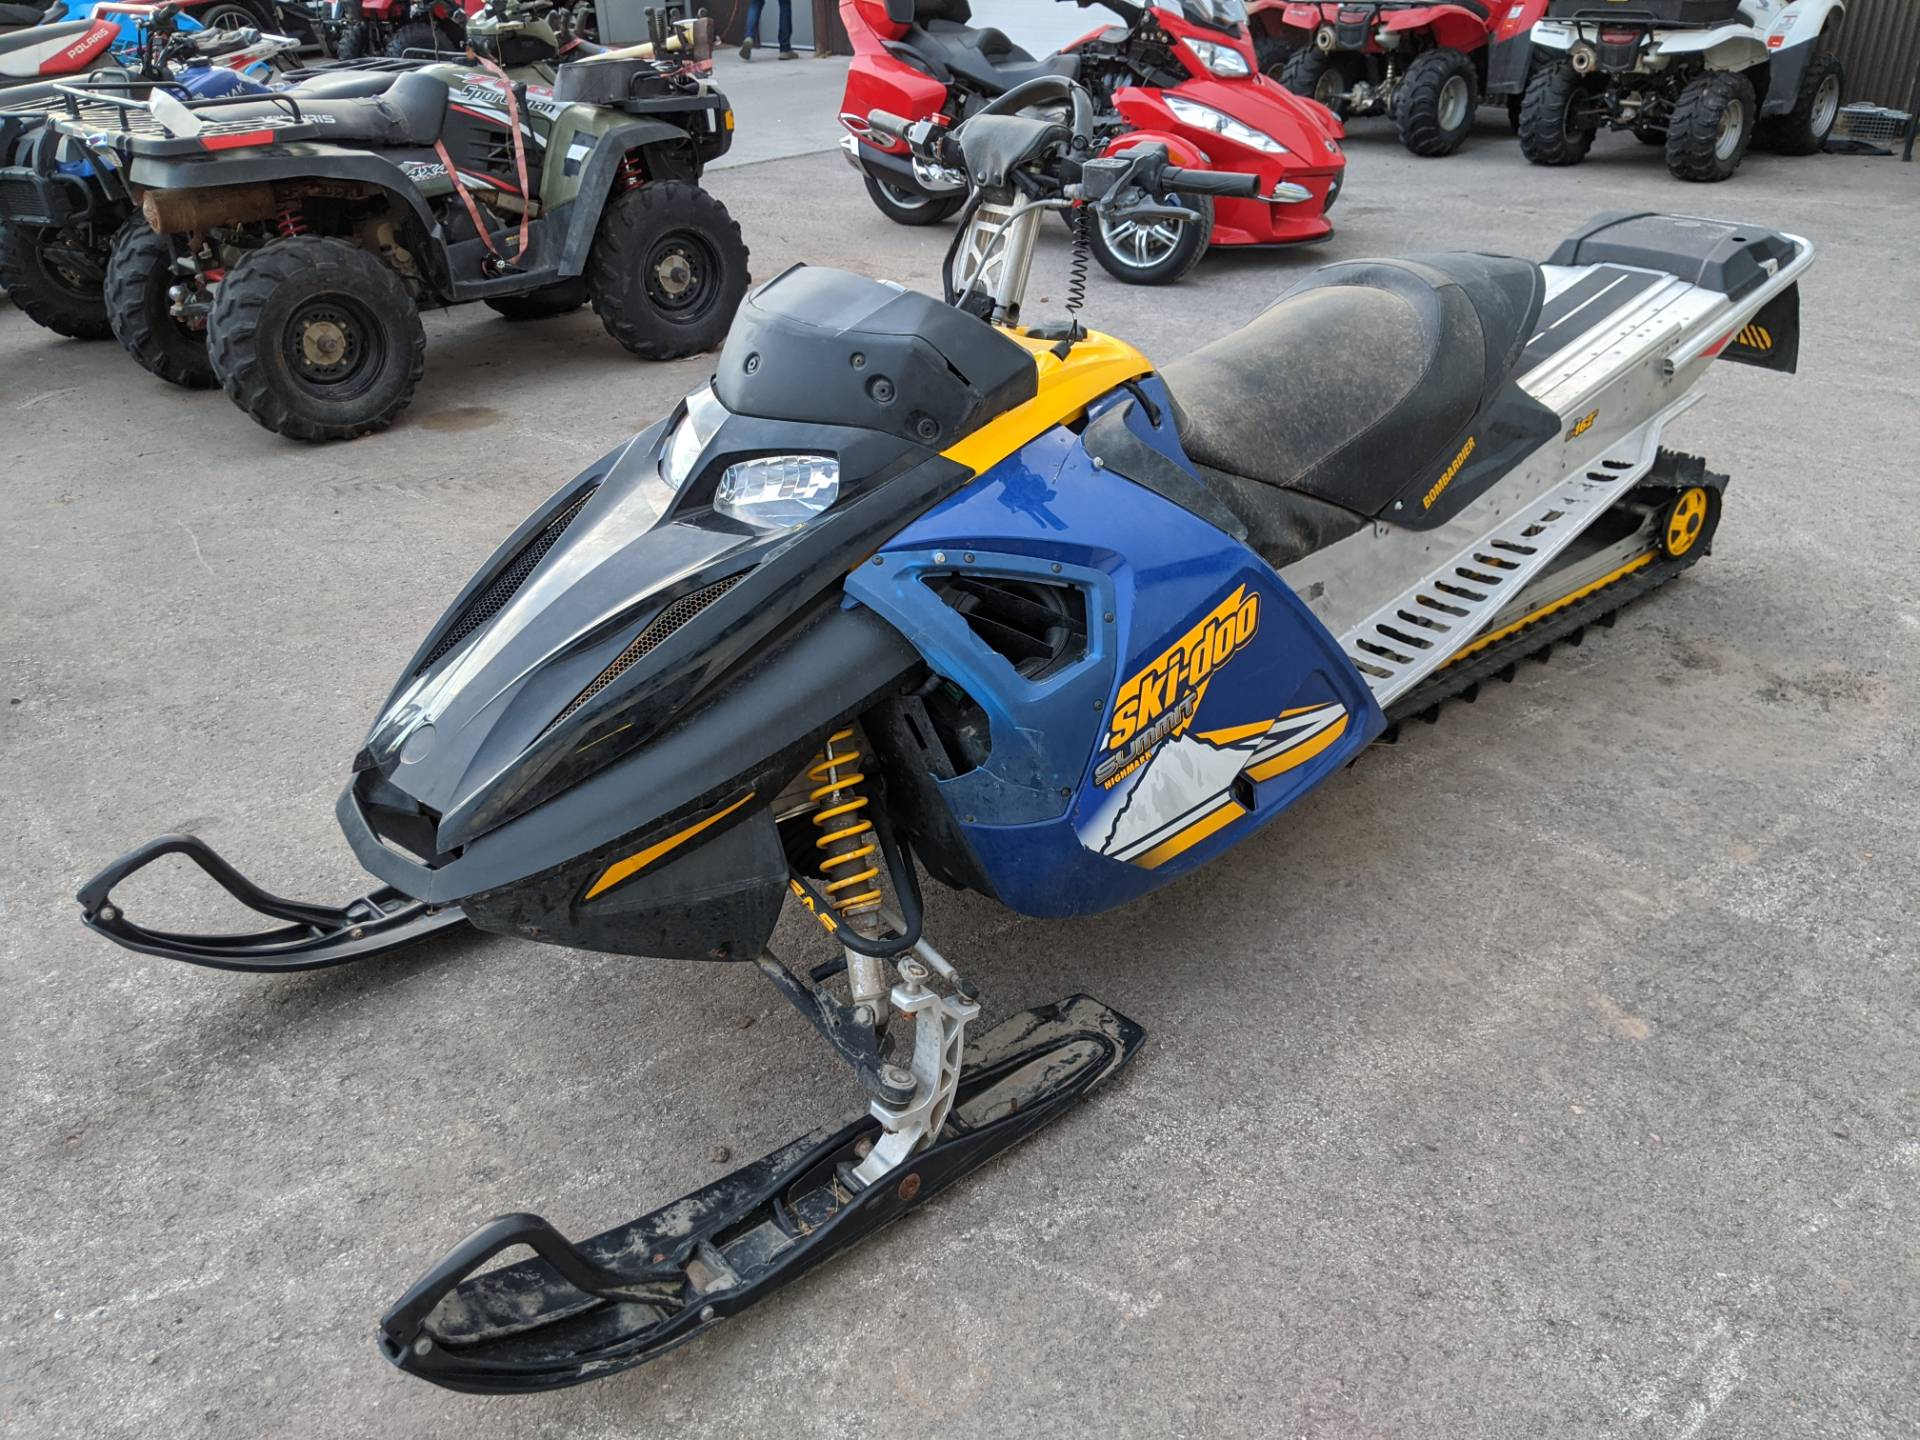 2005 Ski-Doo Summit Highmark 1000 X in Rapid City, South Dakota - Photo 1